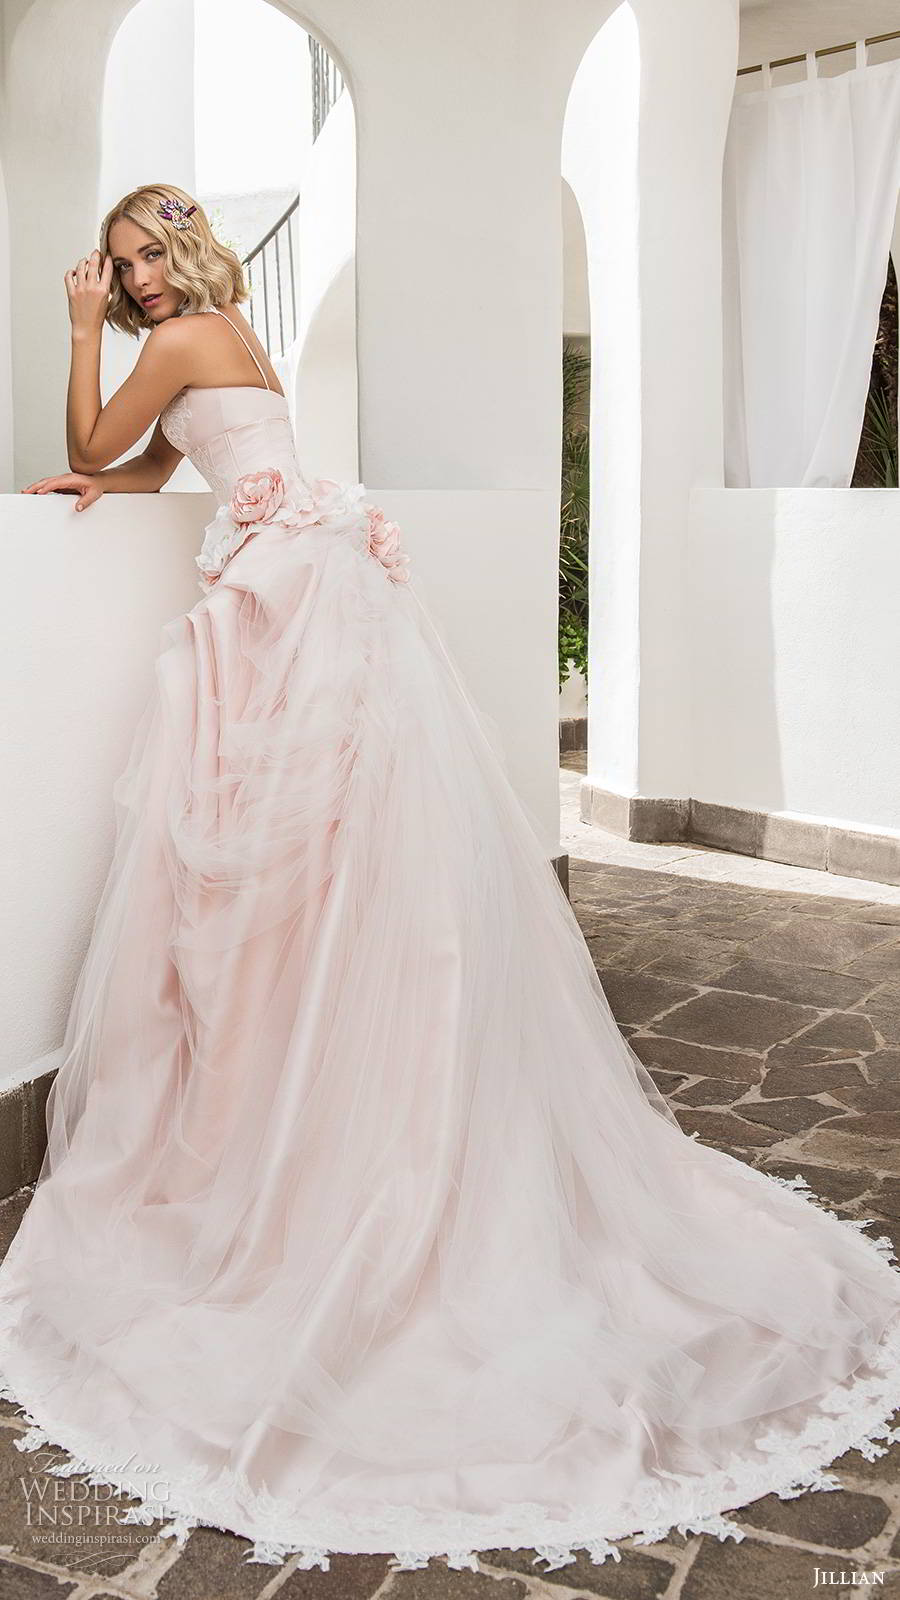 jillian sposa 2020 bridal strapless semi sweetheart neckline embellished corset bodice pickup skirt romantic ball gown wedding dress pink color chapel train (8) sv